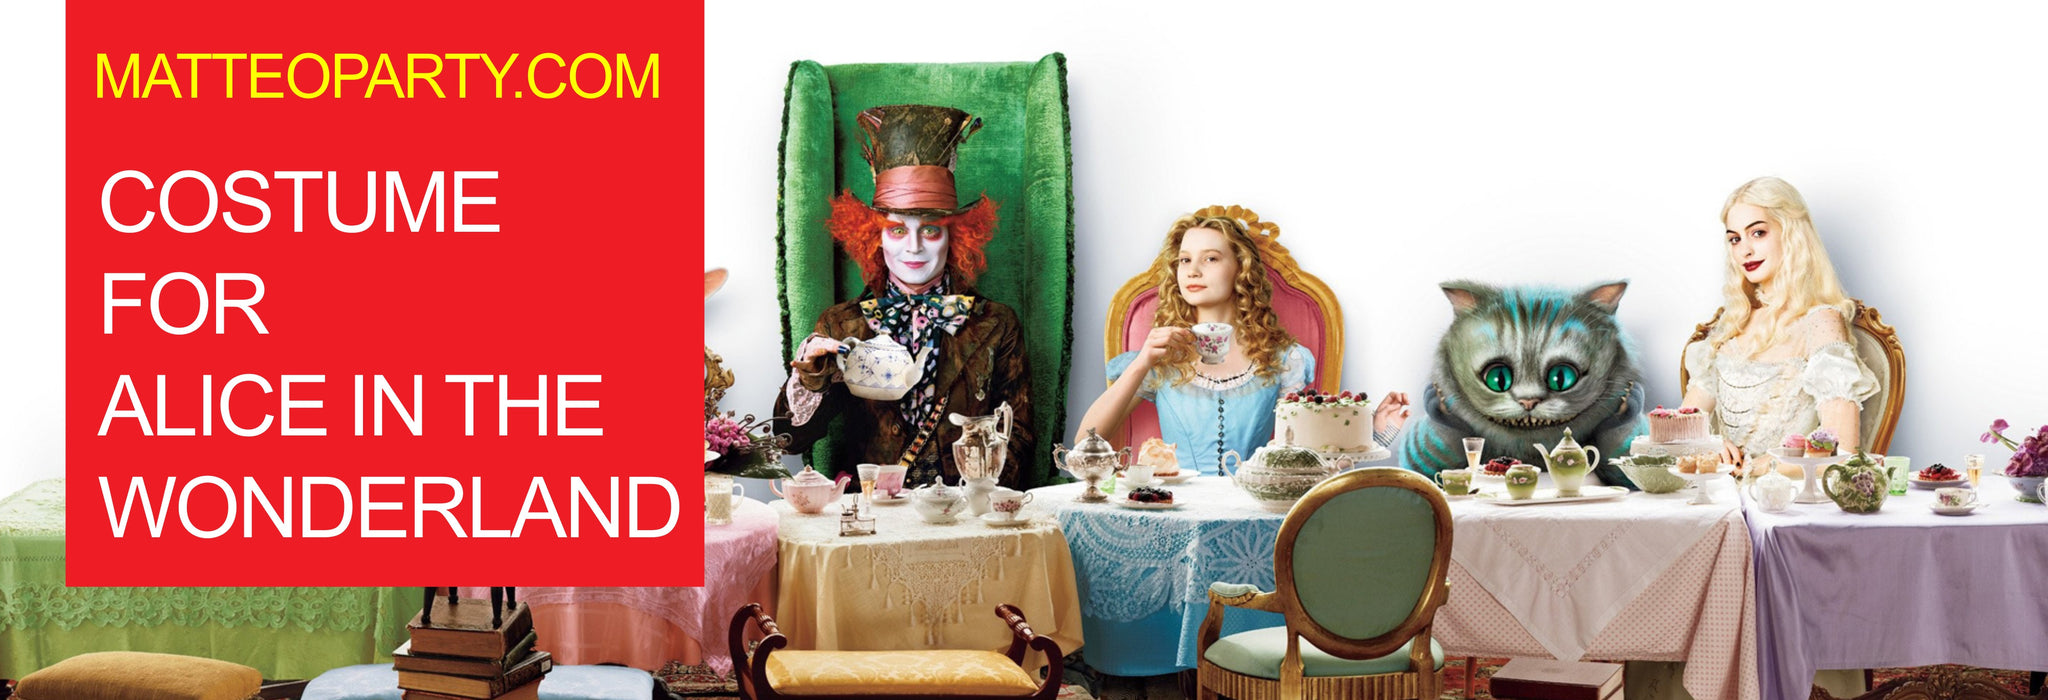 8549fb610 Alice in Wonderland Costumes - Matteo Party Hong Kong – MATTEO PARTY